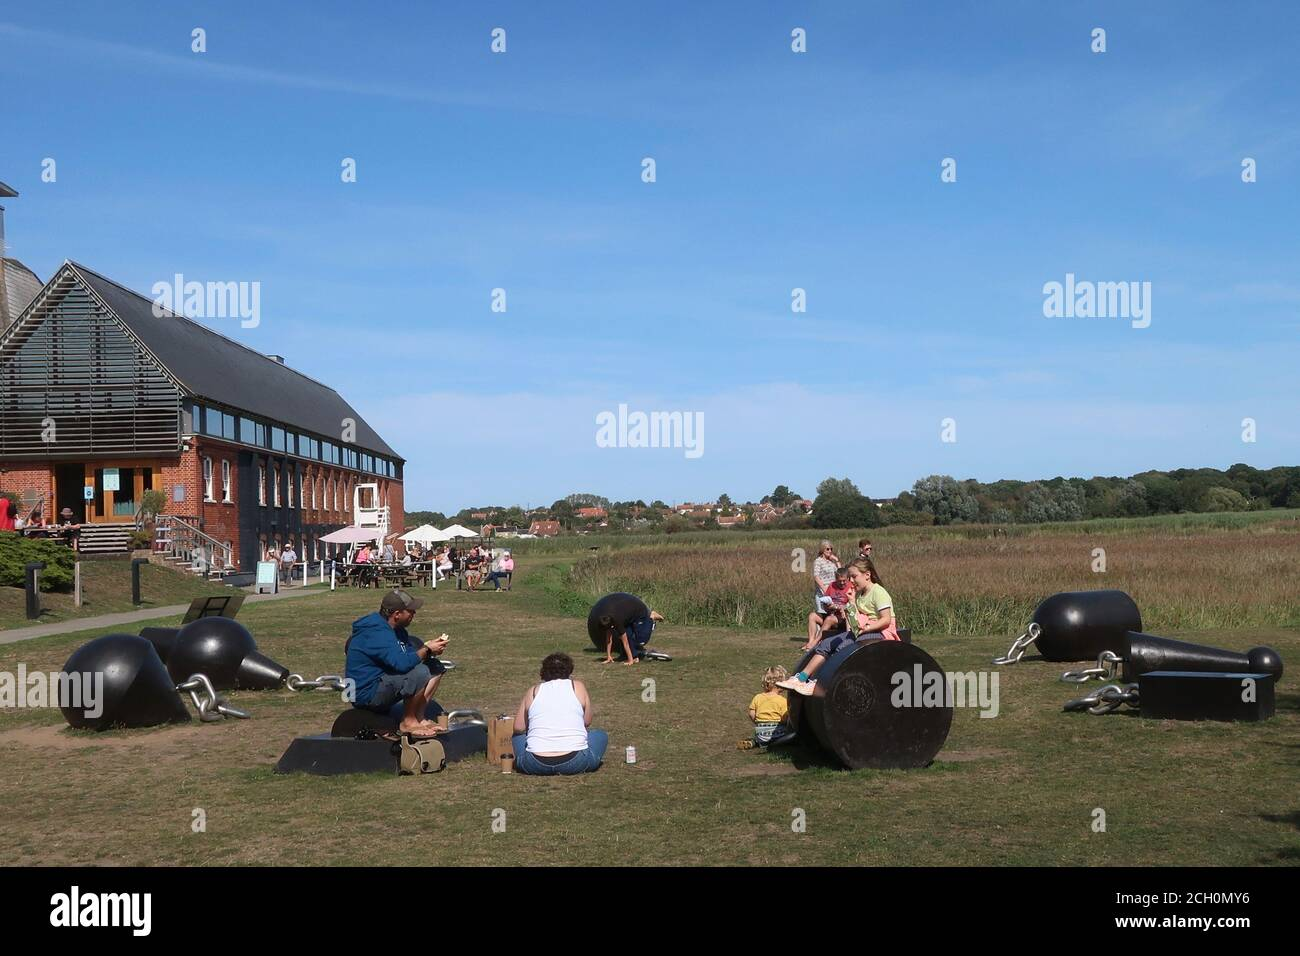 Snape, Suffolk, UK - 13 September 2020: Sunny Sunday autumn afternoon by the River Alde at Snape Maltings. Picnic on the art - To give light by Ryan Gander (2018). Stock Photo